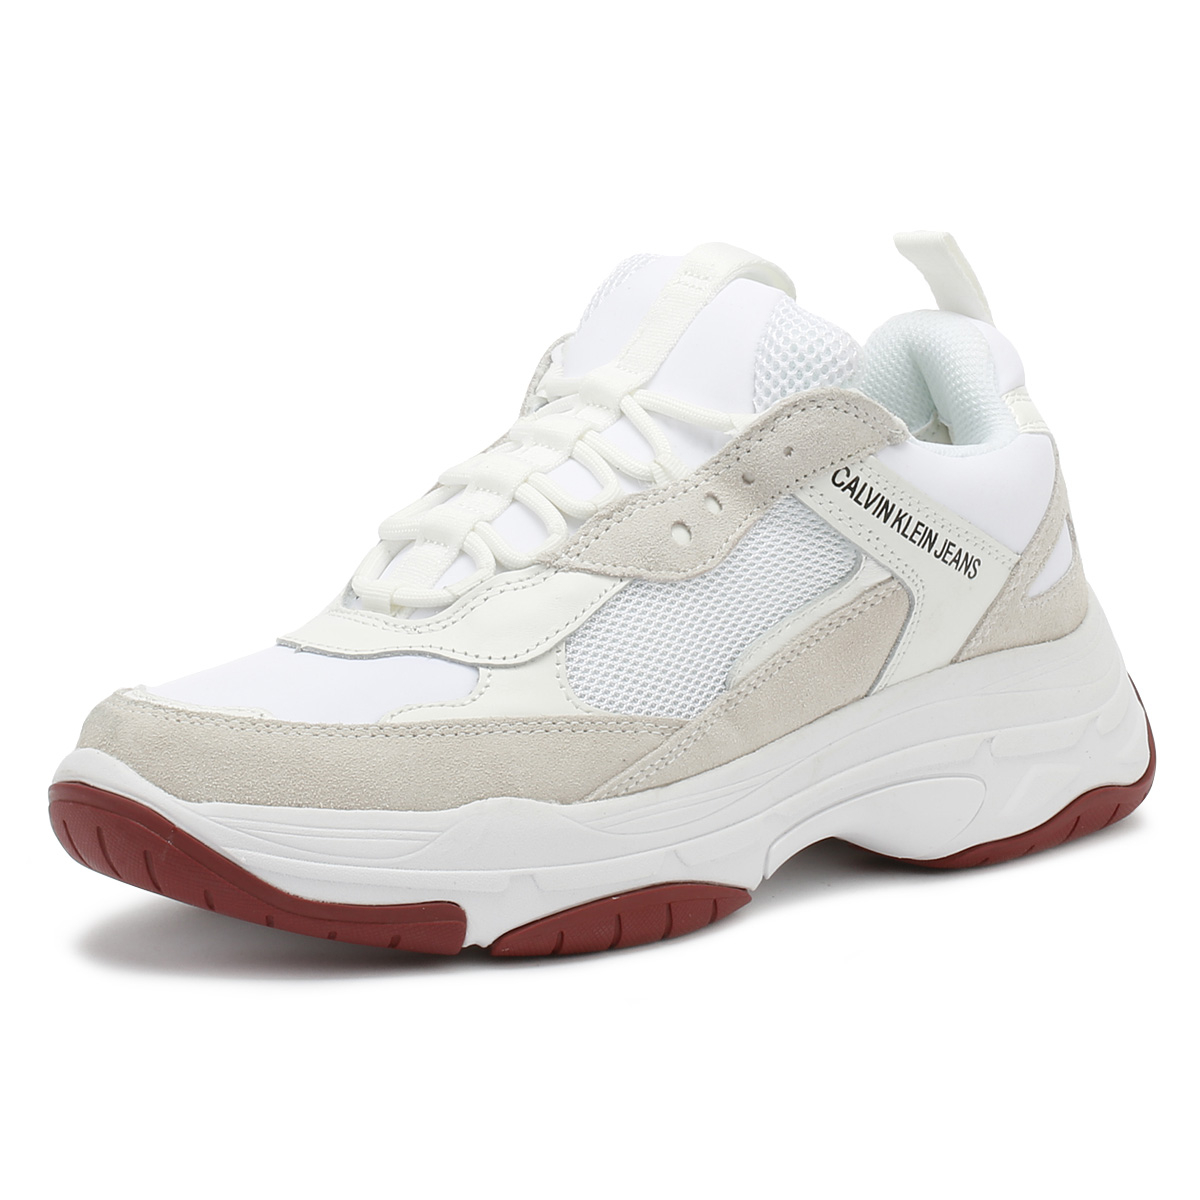 34ef96040c59a Details about Calvin Klein Jeans Mens Trainers White Marvin Chunky Sport  Casual Shoes